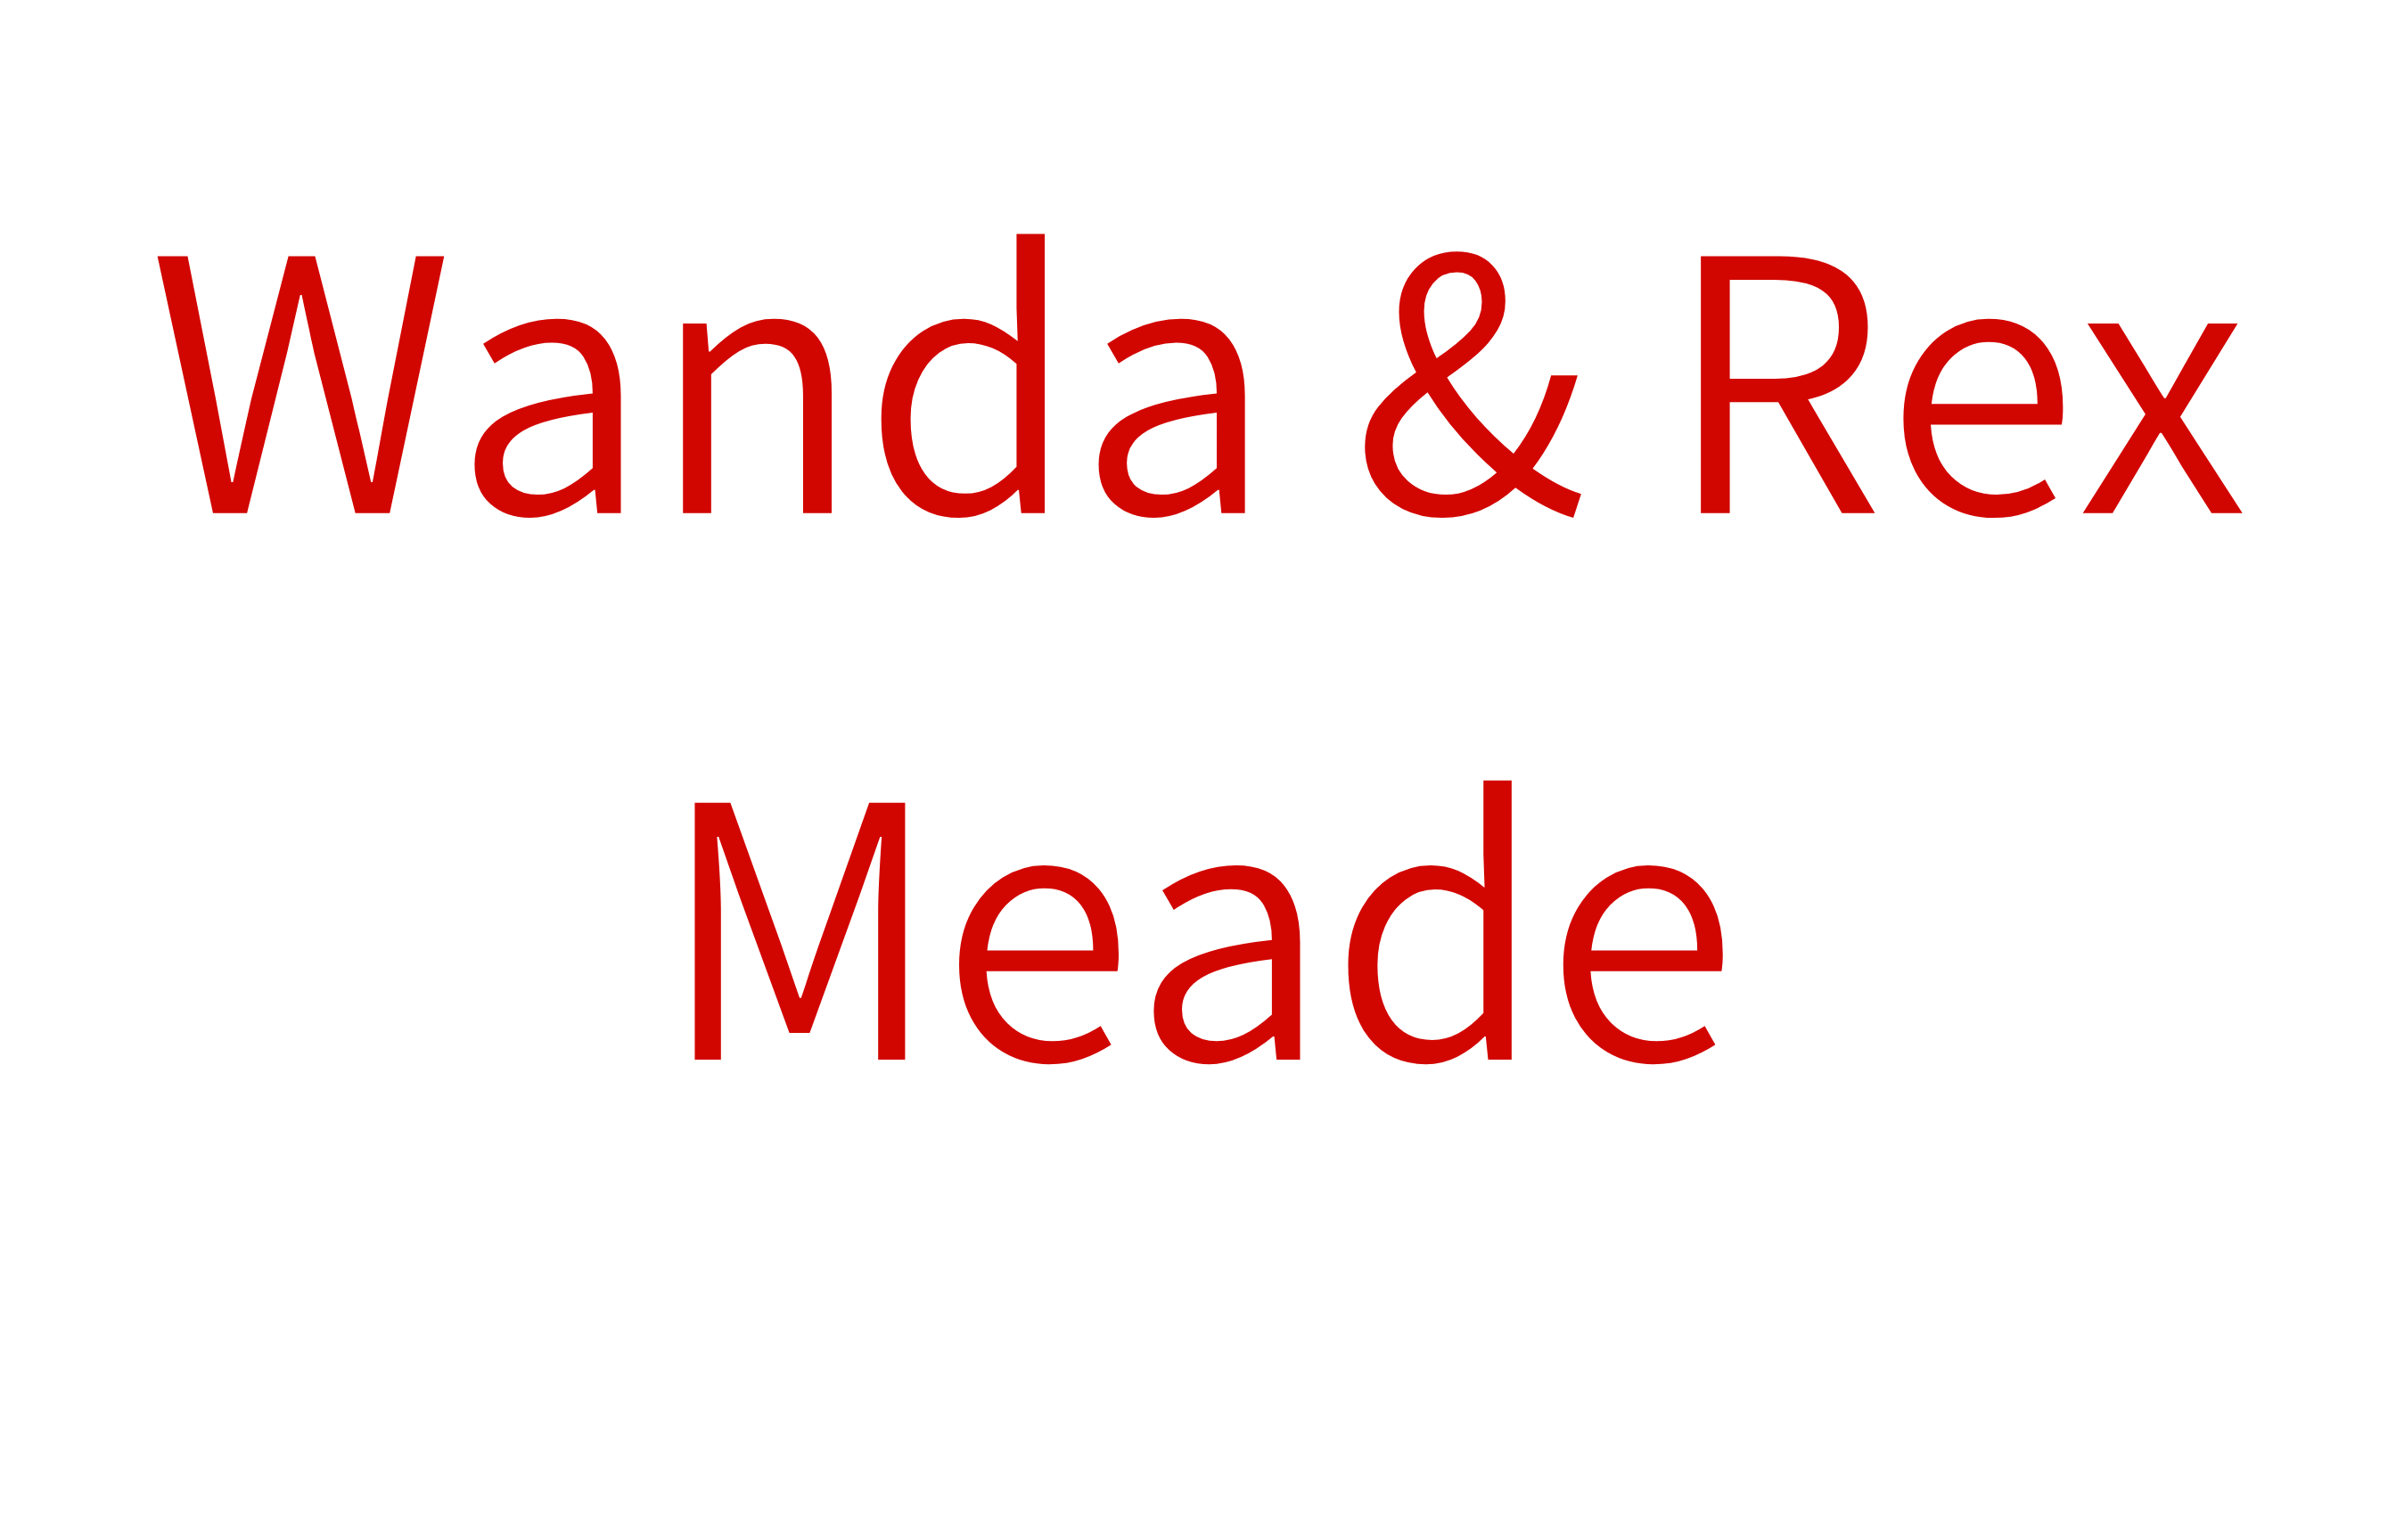 Wanda and Rex Meade